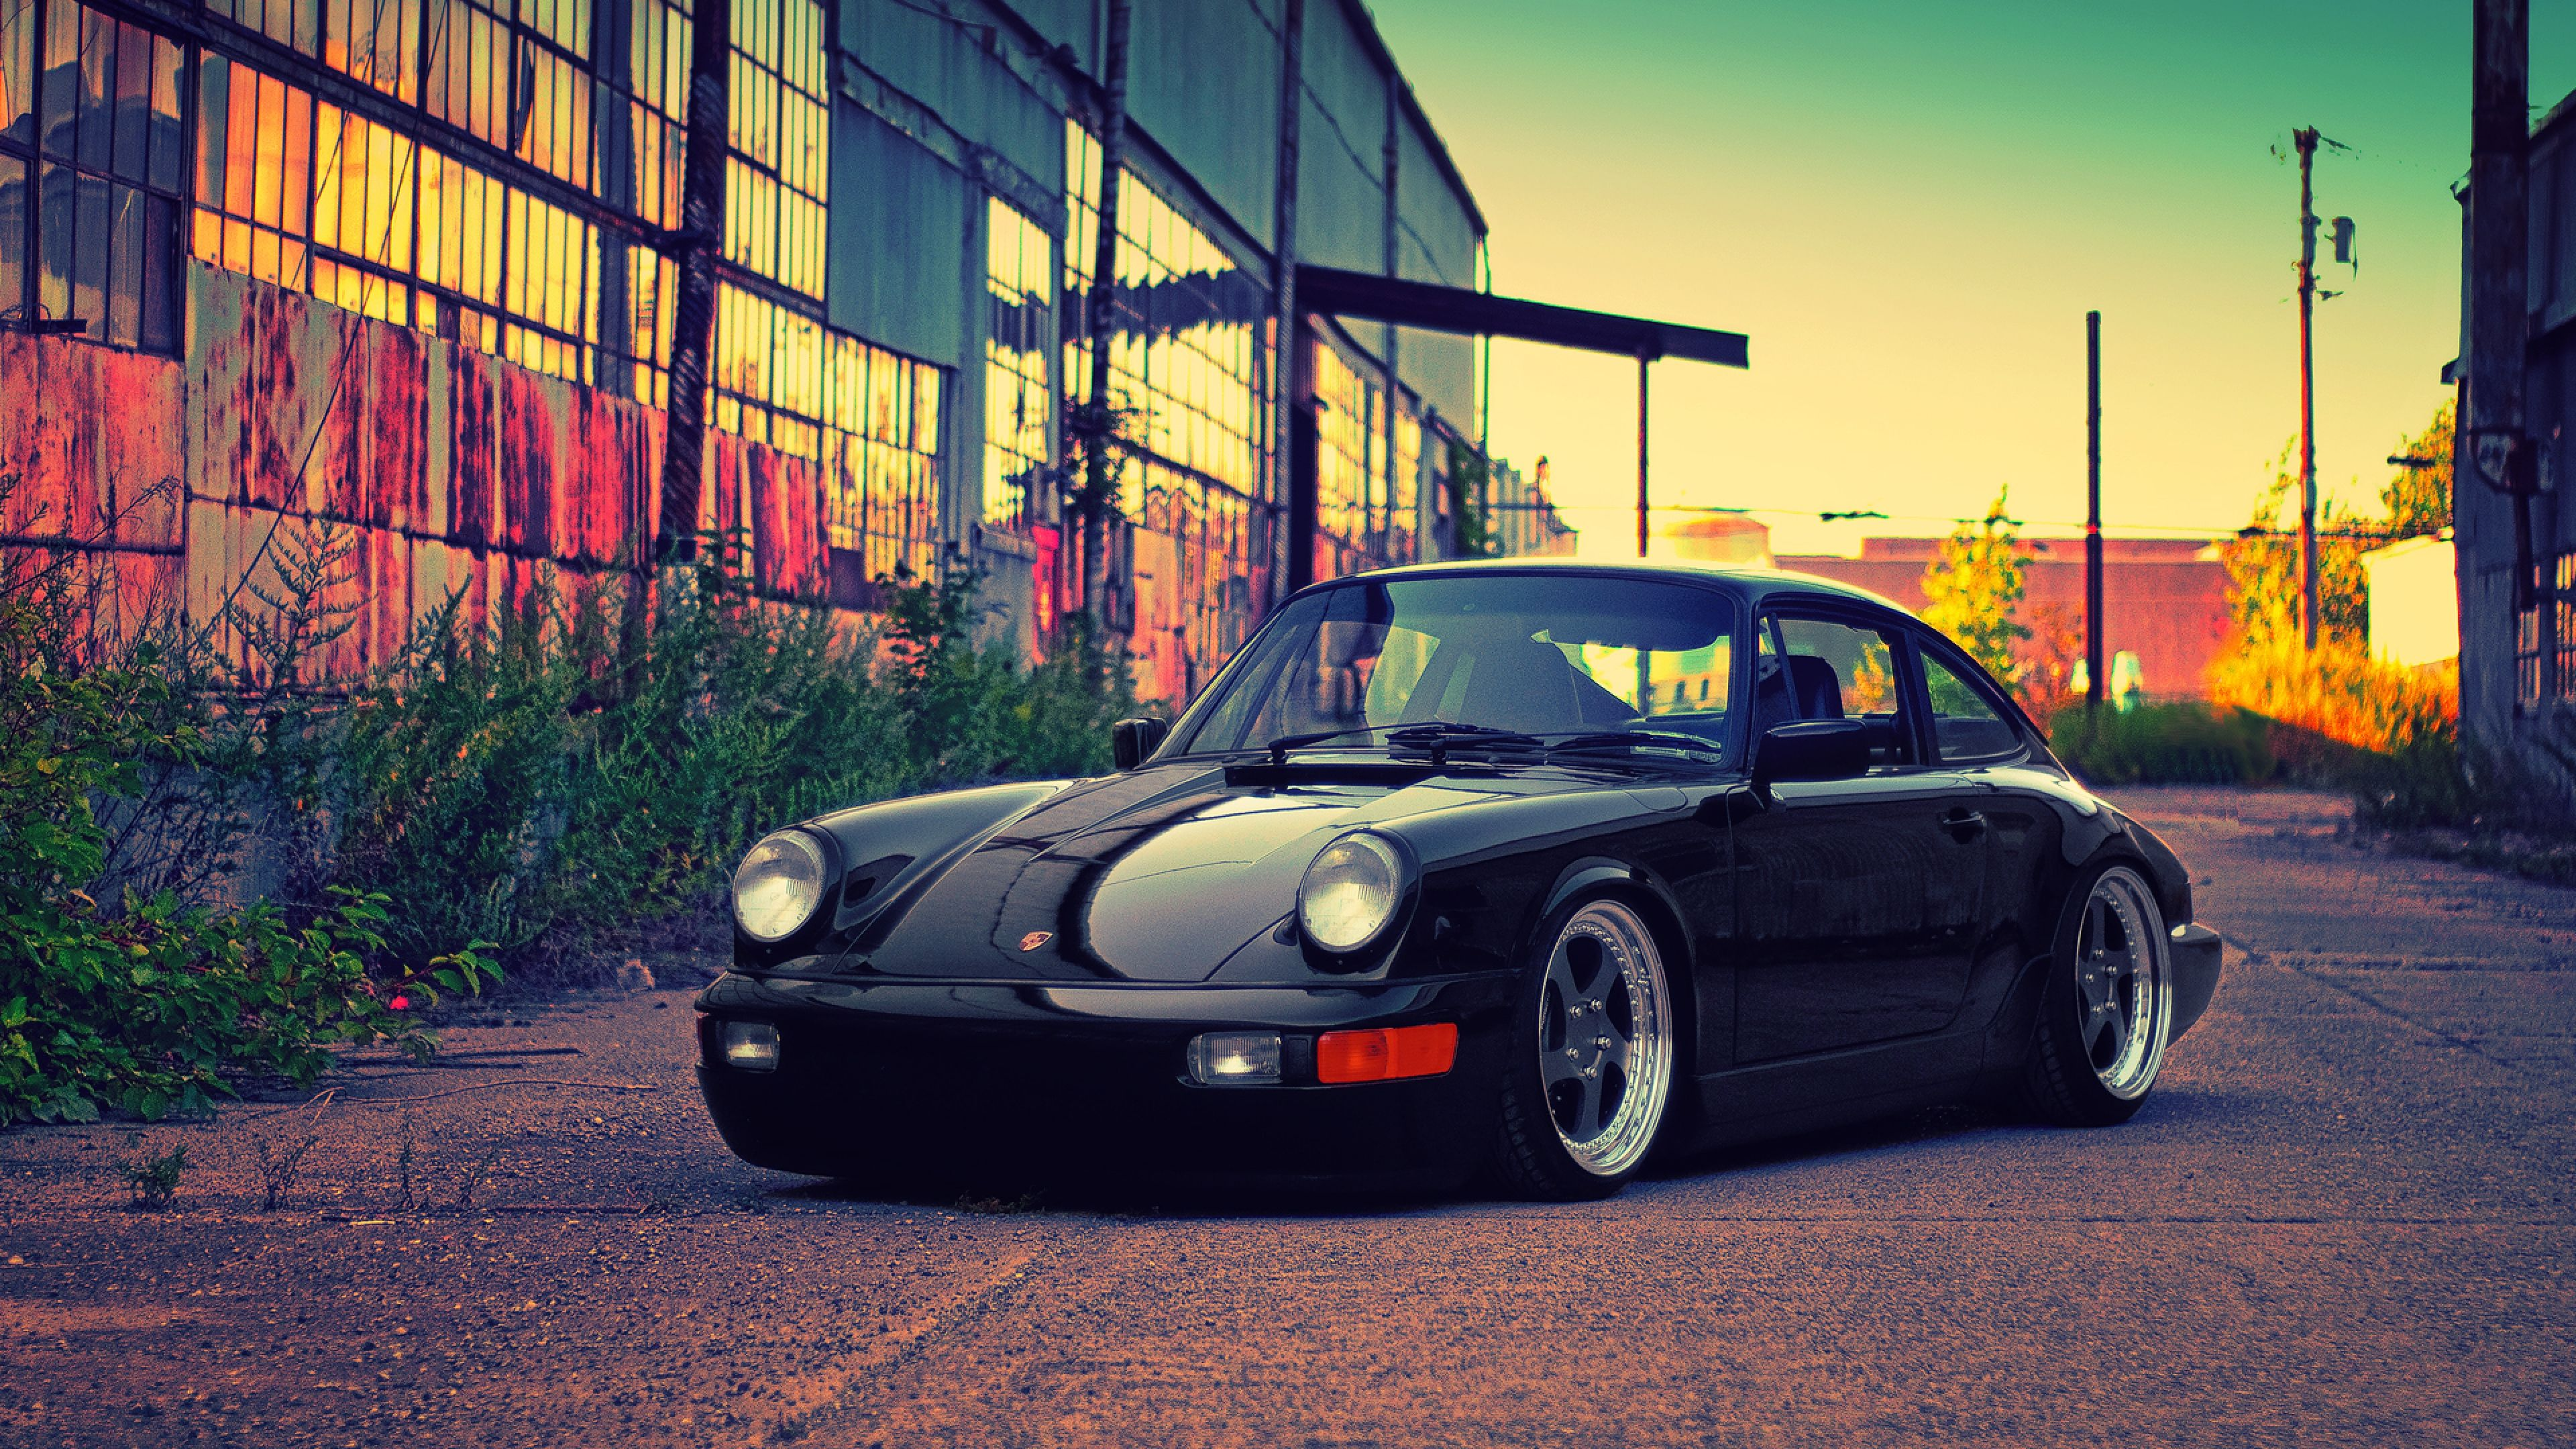 Vintage Porsche Wallpapers Top Free Vintage Porsche Backgrounds Wallpaperaccess